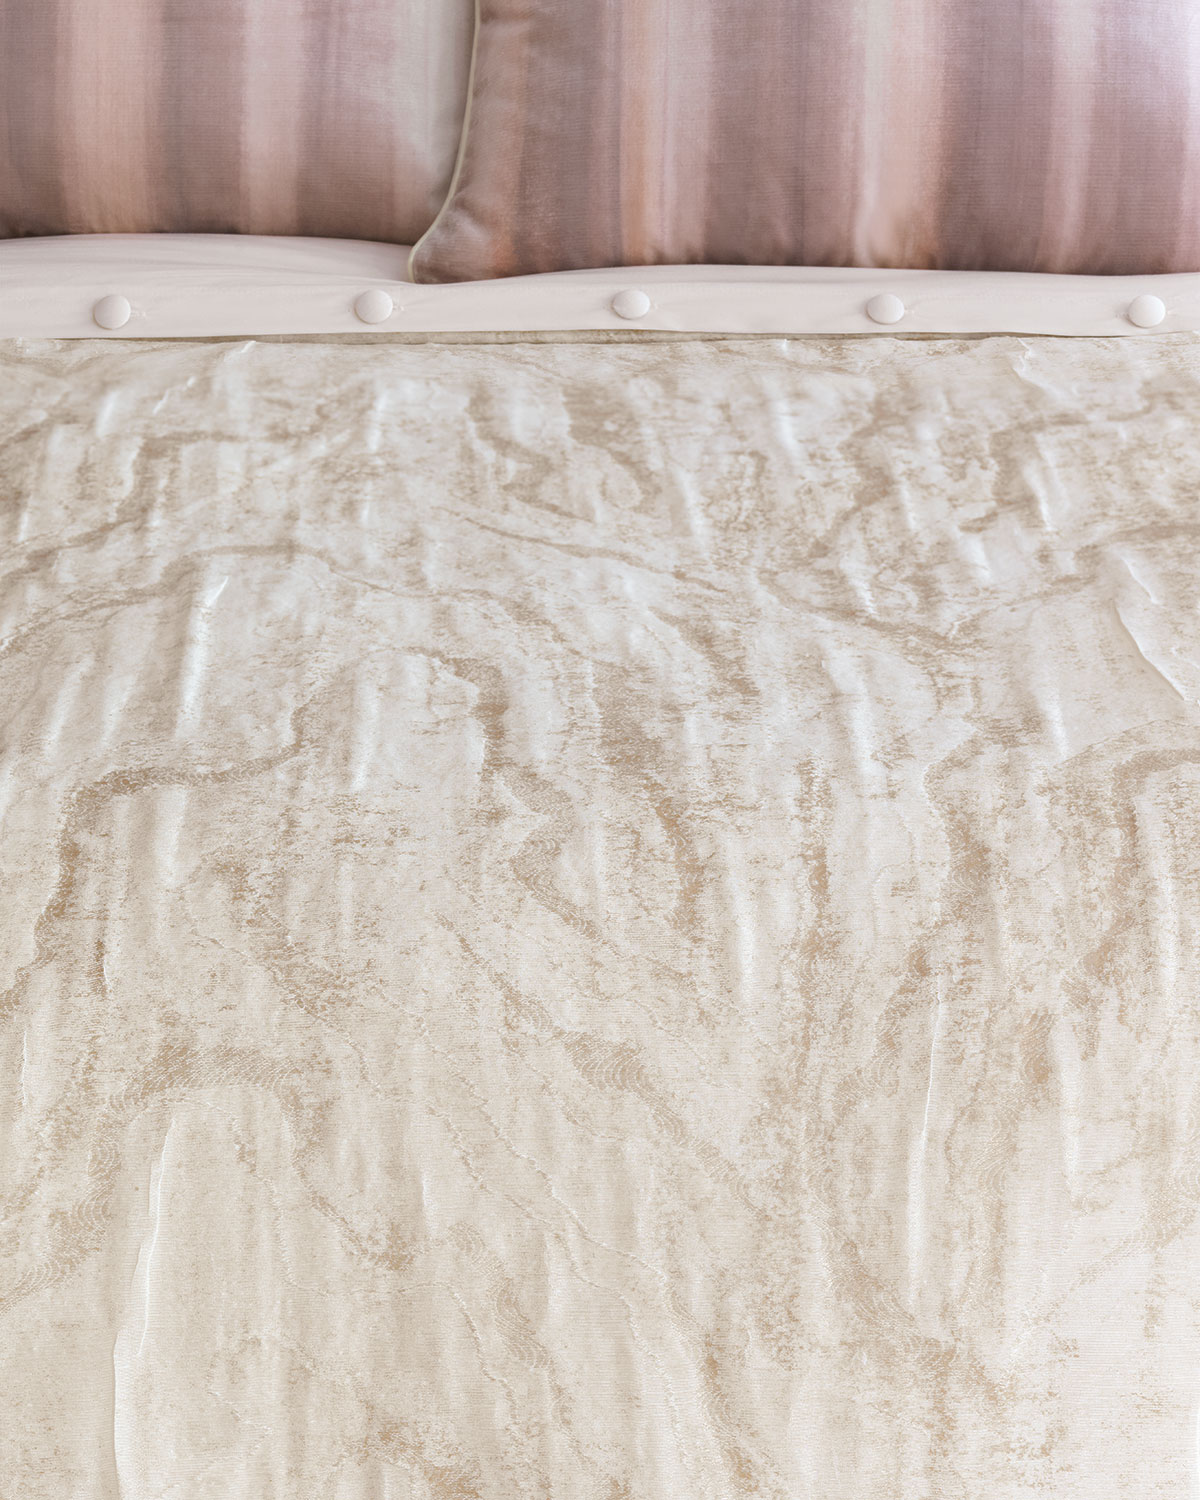 Merveilleux Eastern Accents Halo Oversized King Duvet Cover